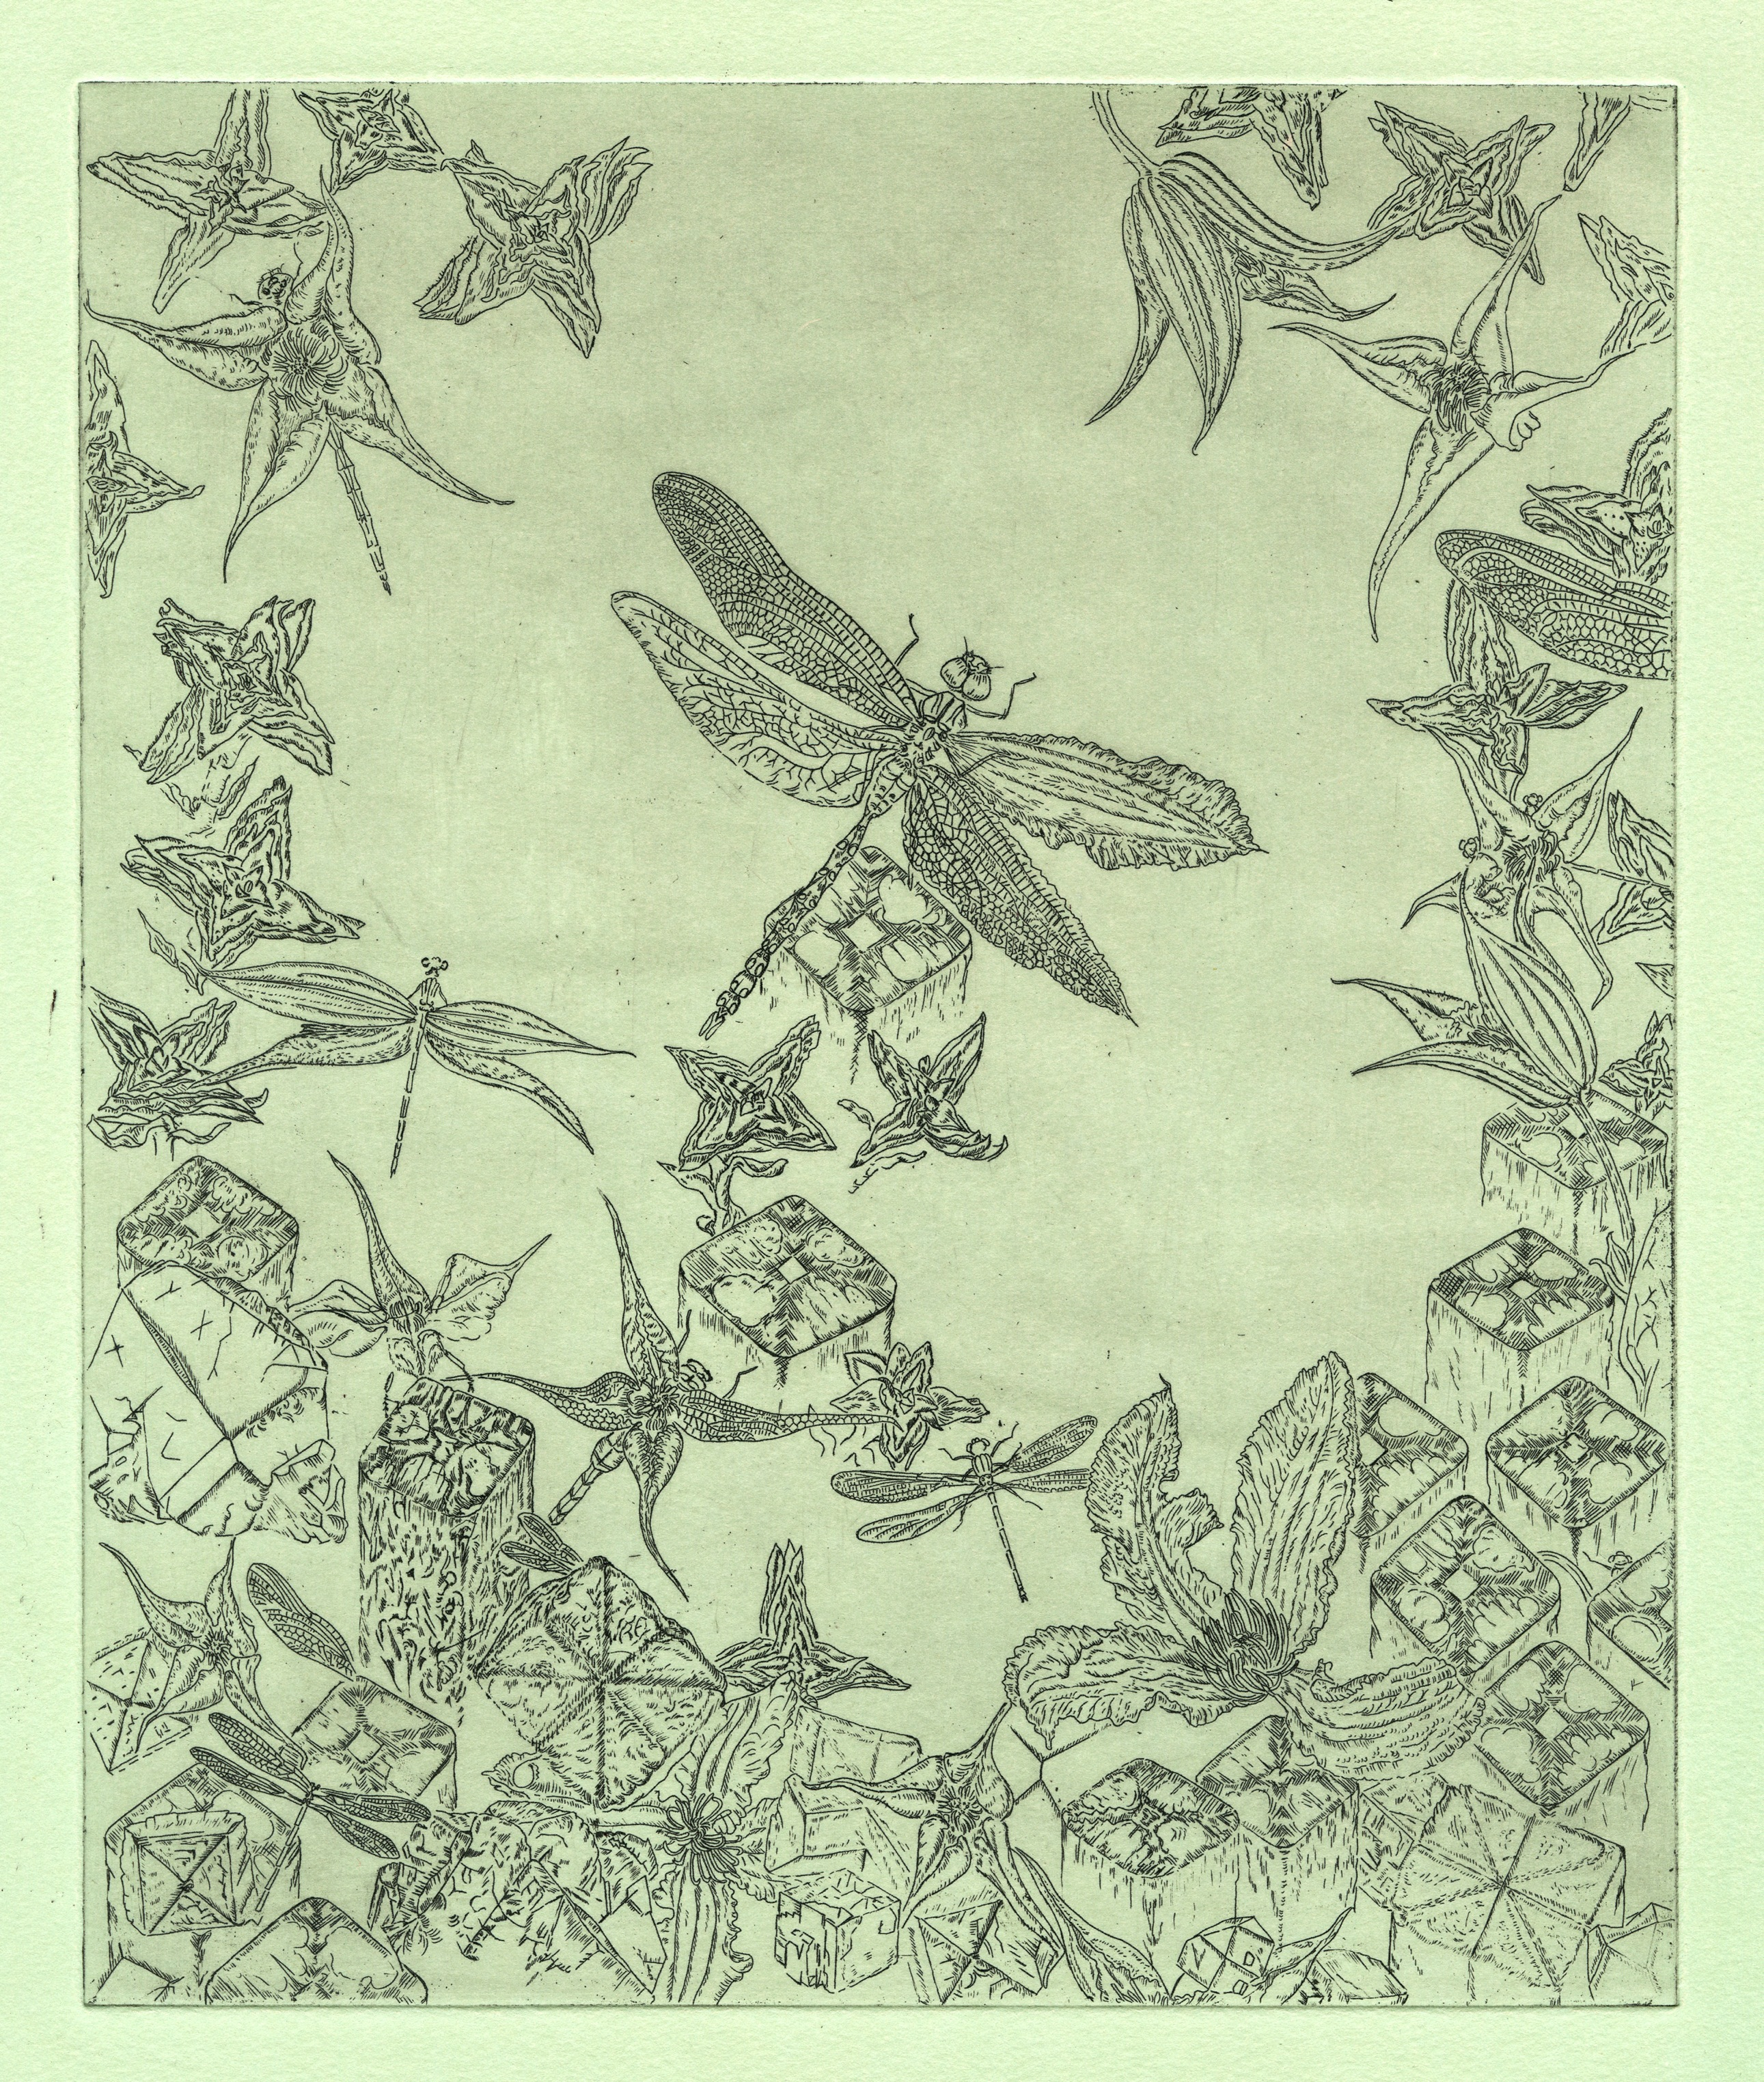 This image is a copper etching and is from a research project by Gemma Anderson. The project is entitled Isomorphology which is a new term to both science and visual arts practice. The term was derived by Gemma and the outcome will be a new type of taxonomic order for organic life; a drawing based method of enquiry into shared forms of animals, plants and geology. The illustration shown is about four-fold symmetry. Broadly interdisciplinary, Gemma engages in deep study for subject matter including mathematics and the philosophy of art and science. Truly polymathic!